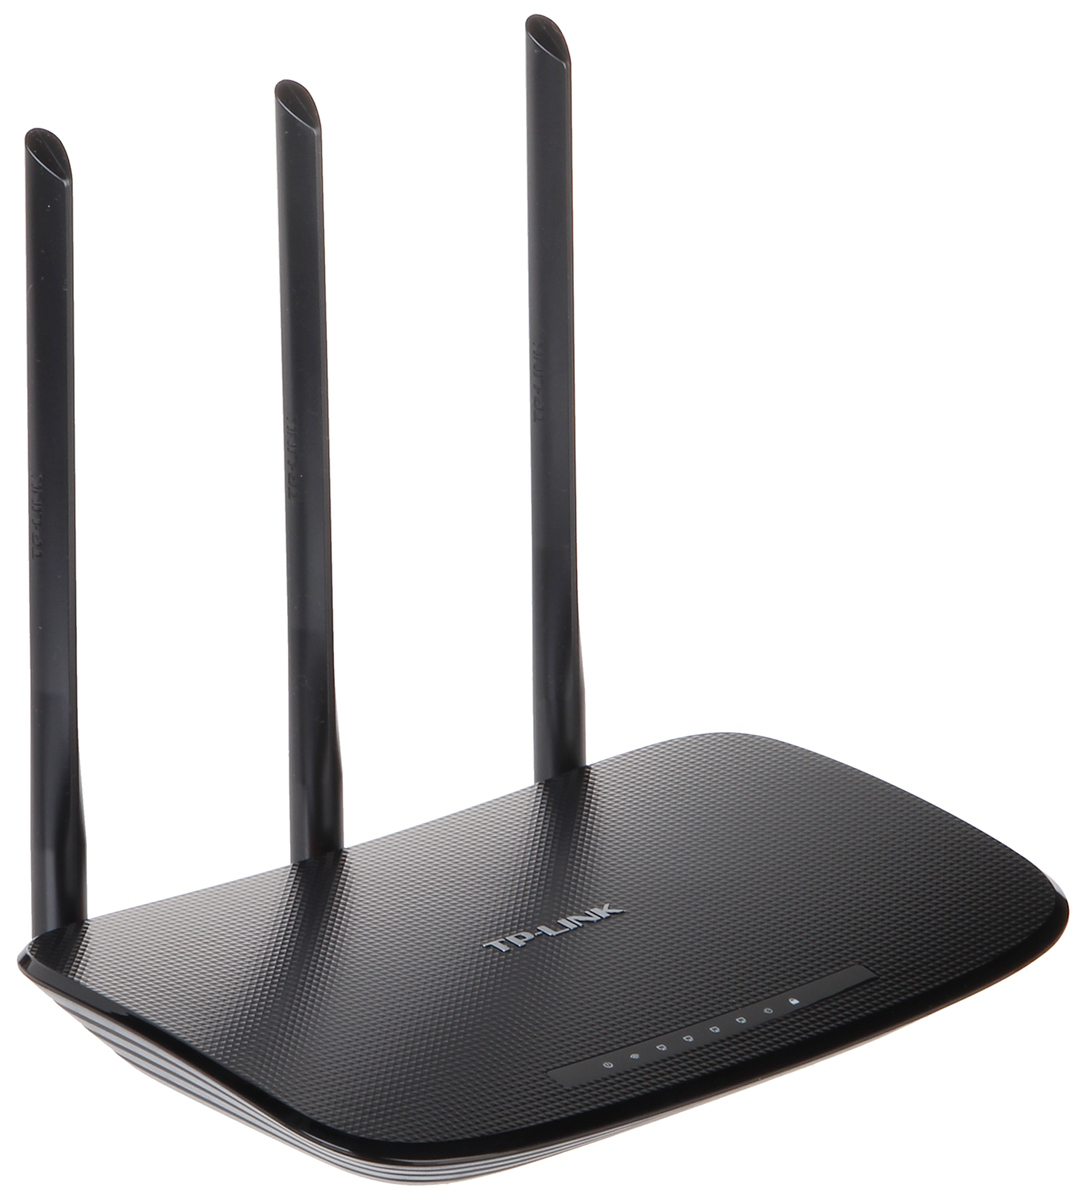 ROUTER, PUNKT DOSTĘPOWY, 2,4 GHz, 3x3 MIMO, 450 Mb/s, TP-LINK, TL-WR940N